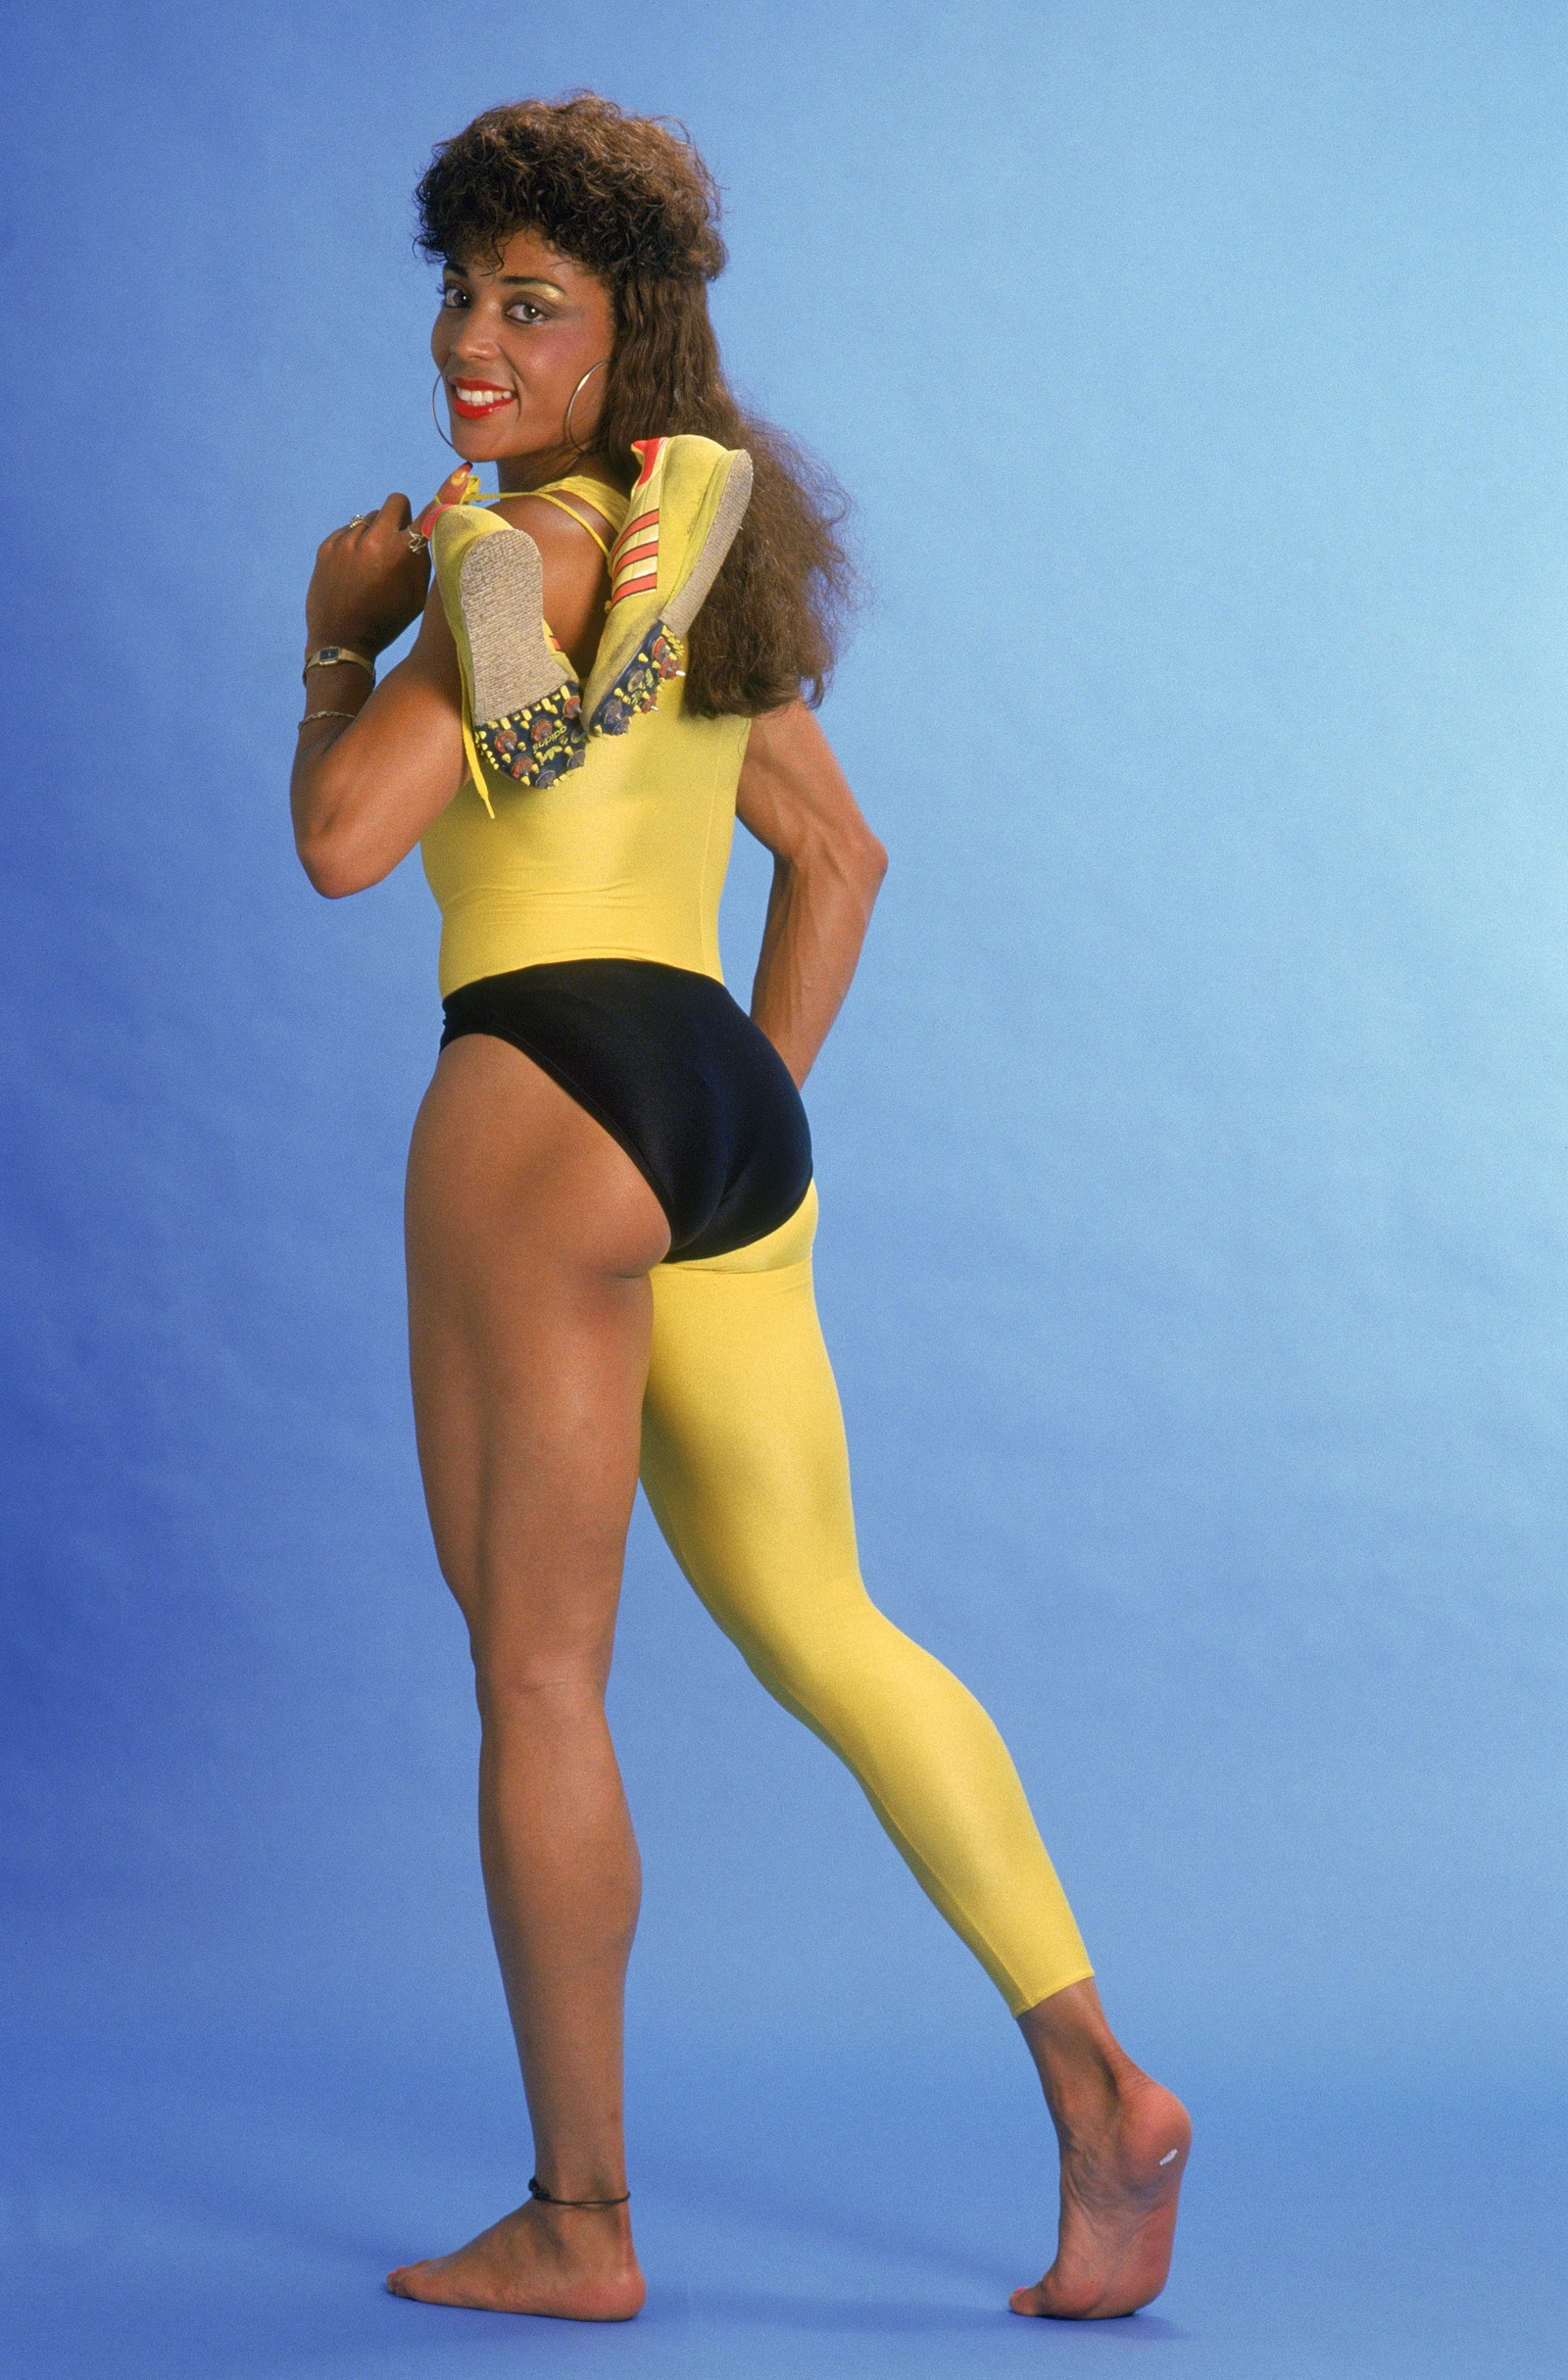 1988 Florence Griffith Joyner poses for a portrait in 1988.